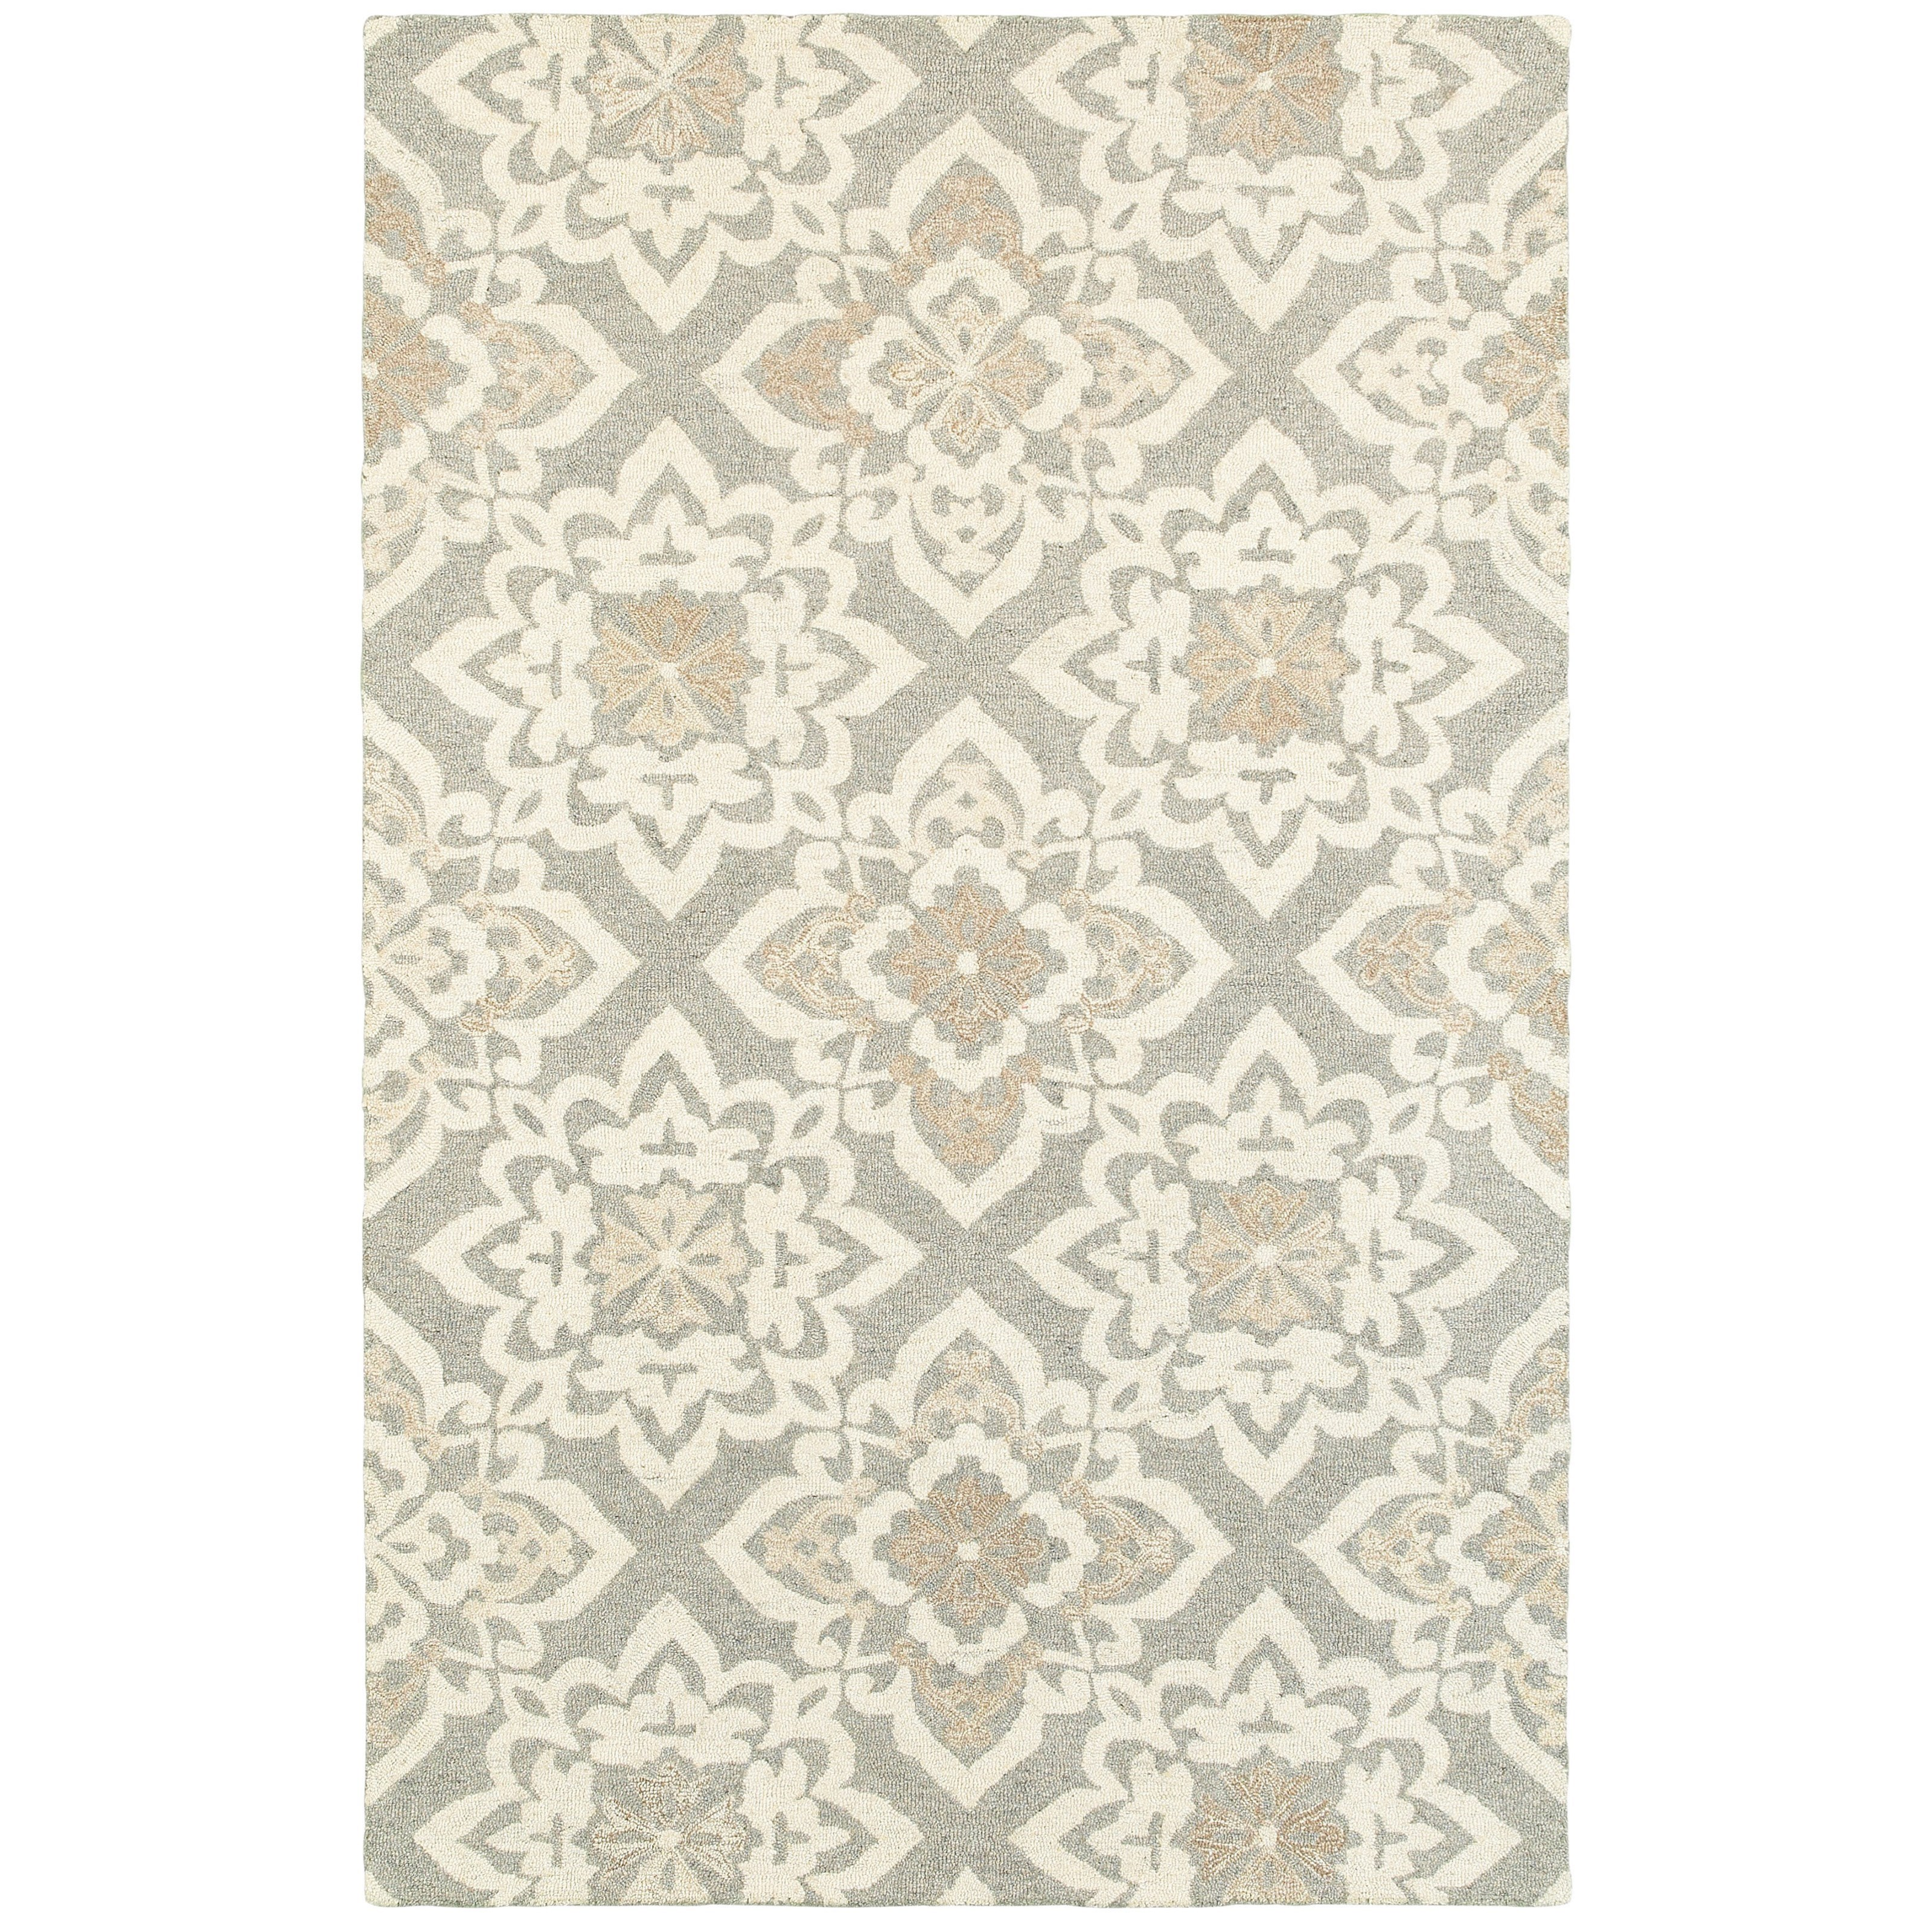 "8' 0"" X 10' 0"" Rectangle Rug"